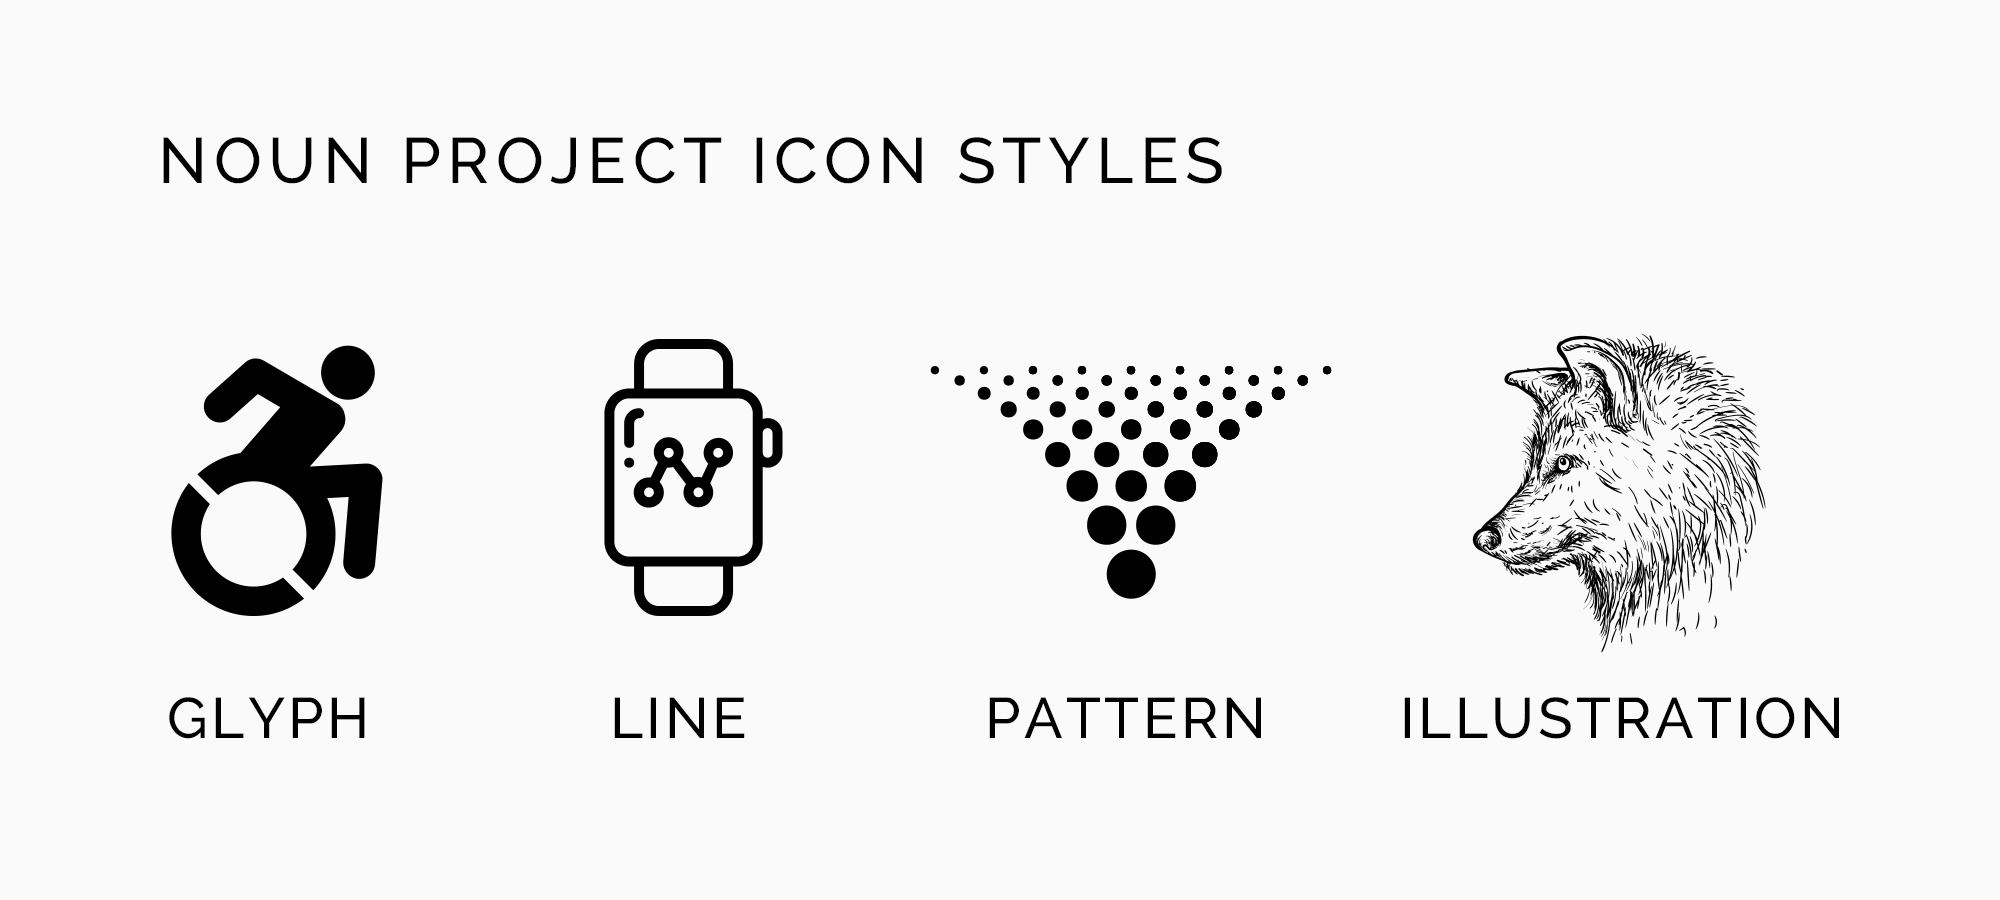 diverse icon styles of the noun project glyph line patterns illustration icons